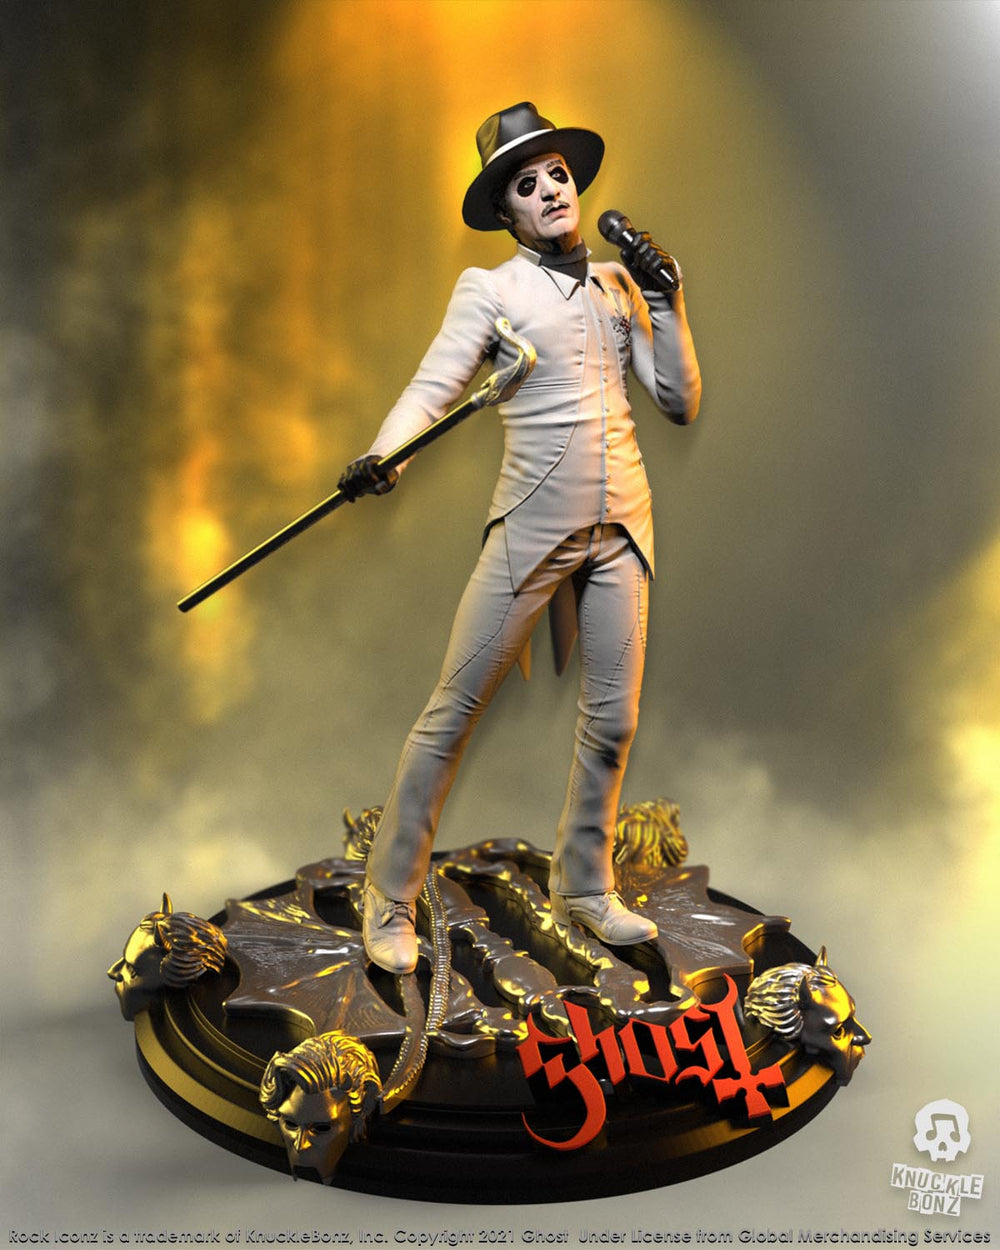 Ghost Collectible 2021 KnuckleBonz Rock Iconz Statue Cardinal Copia White Tuxedo -Variant